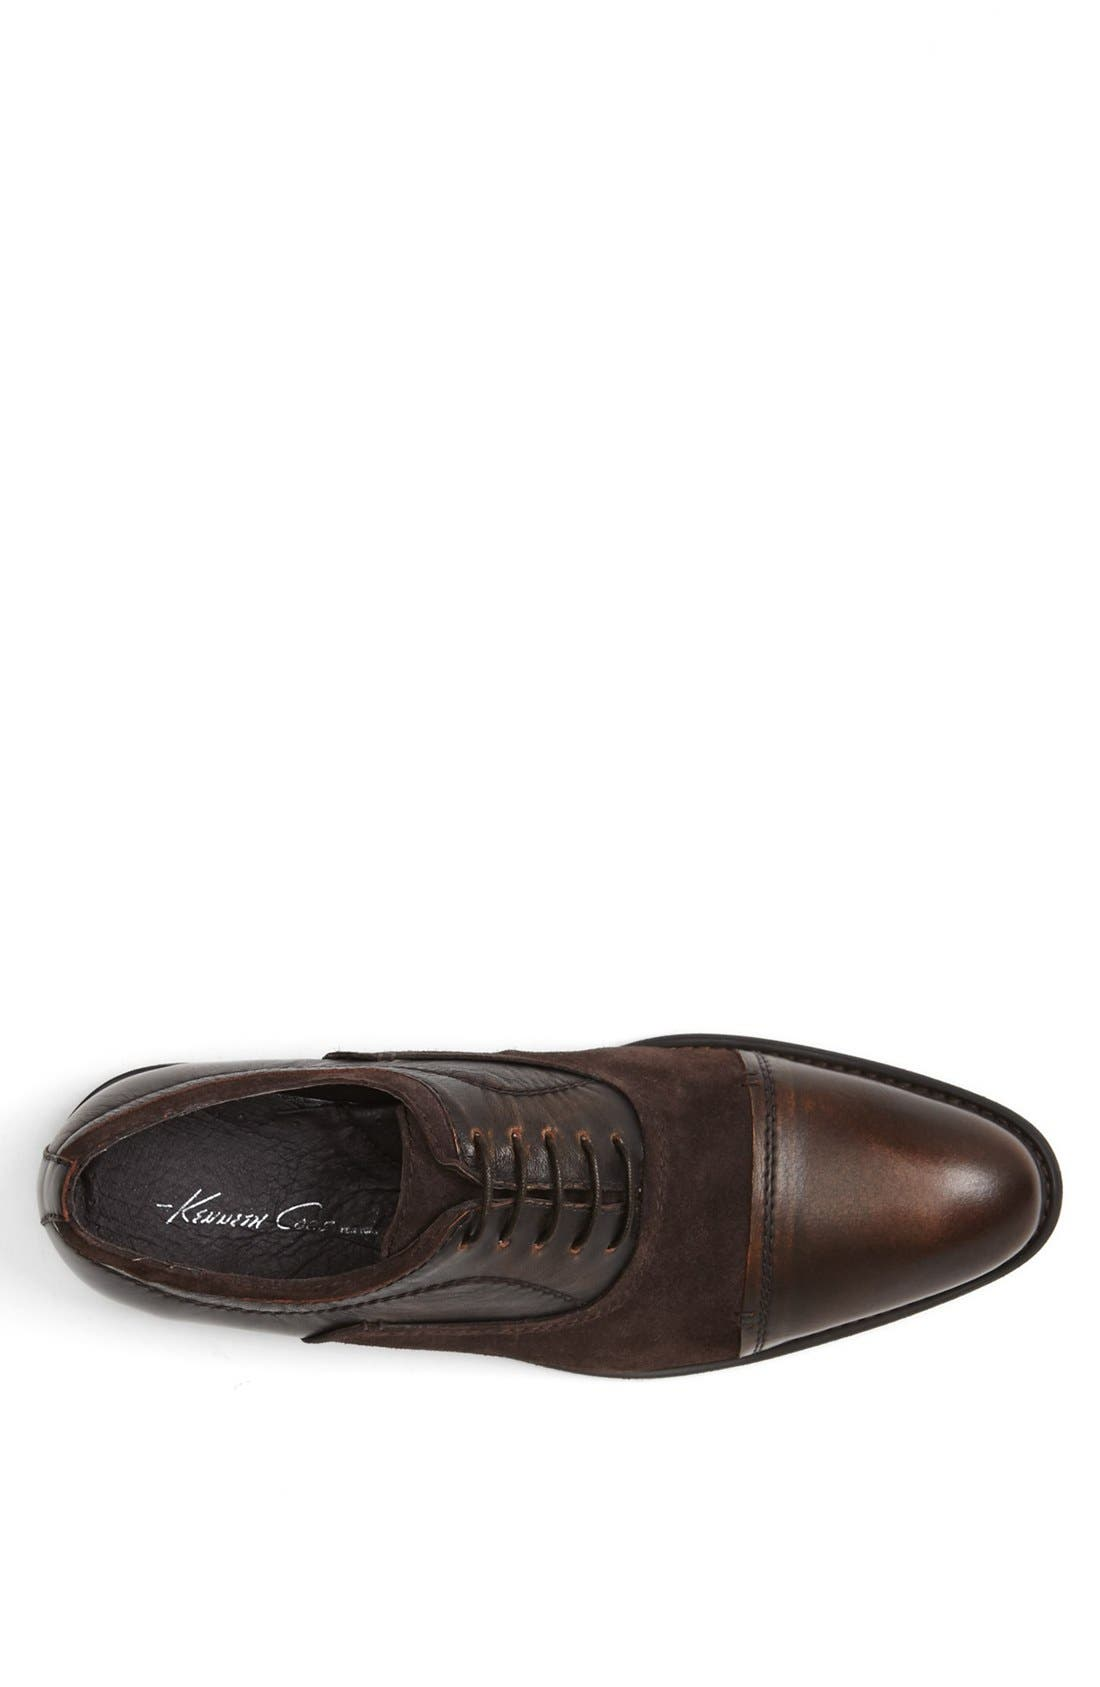 Alternate Image 3  - Kenneth Cole New York 'Wishing Star' Cap Toe Oxford